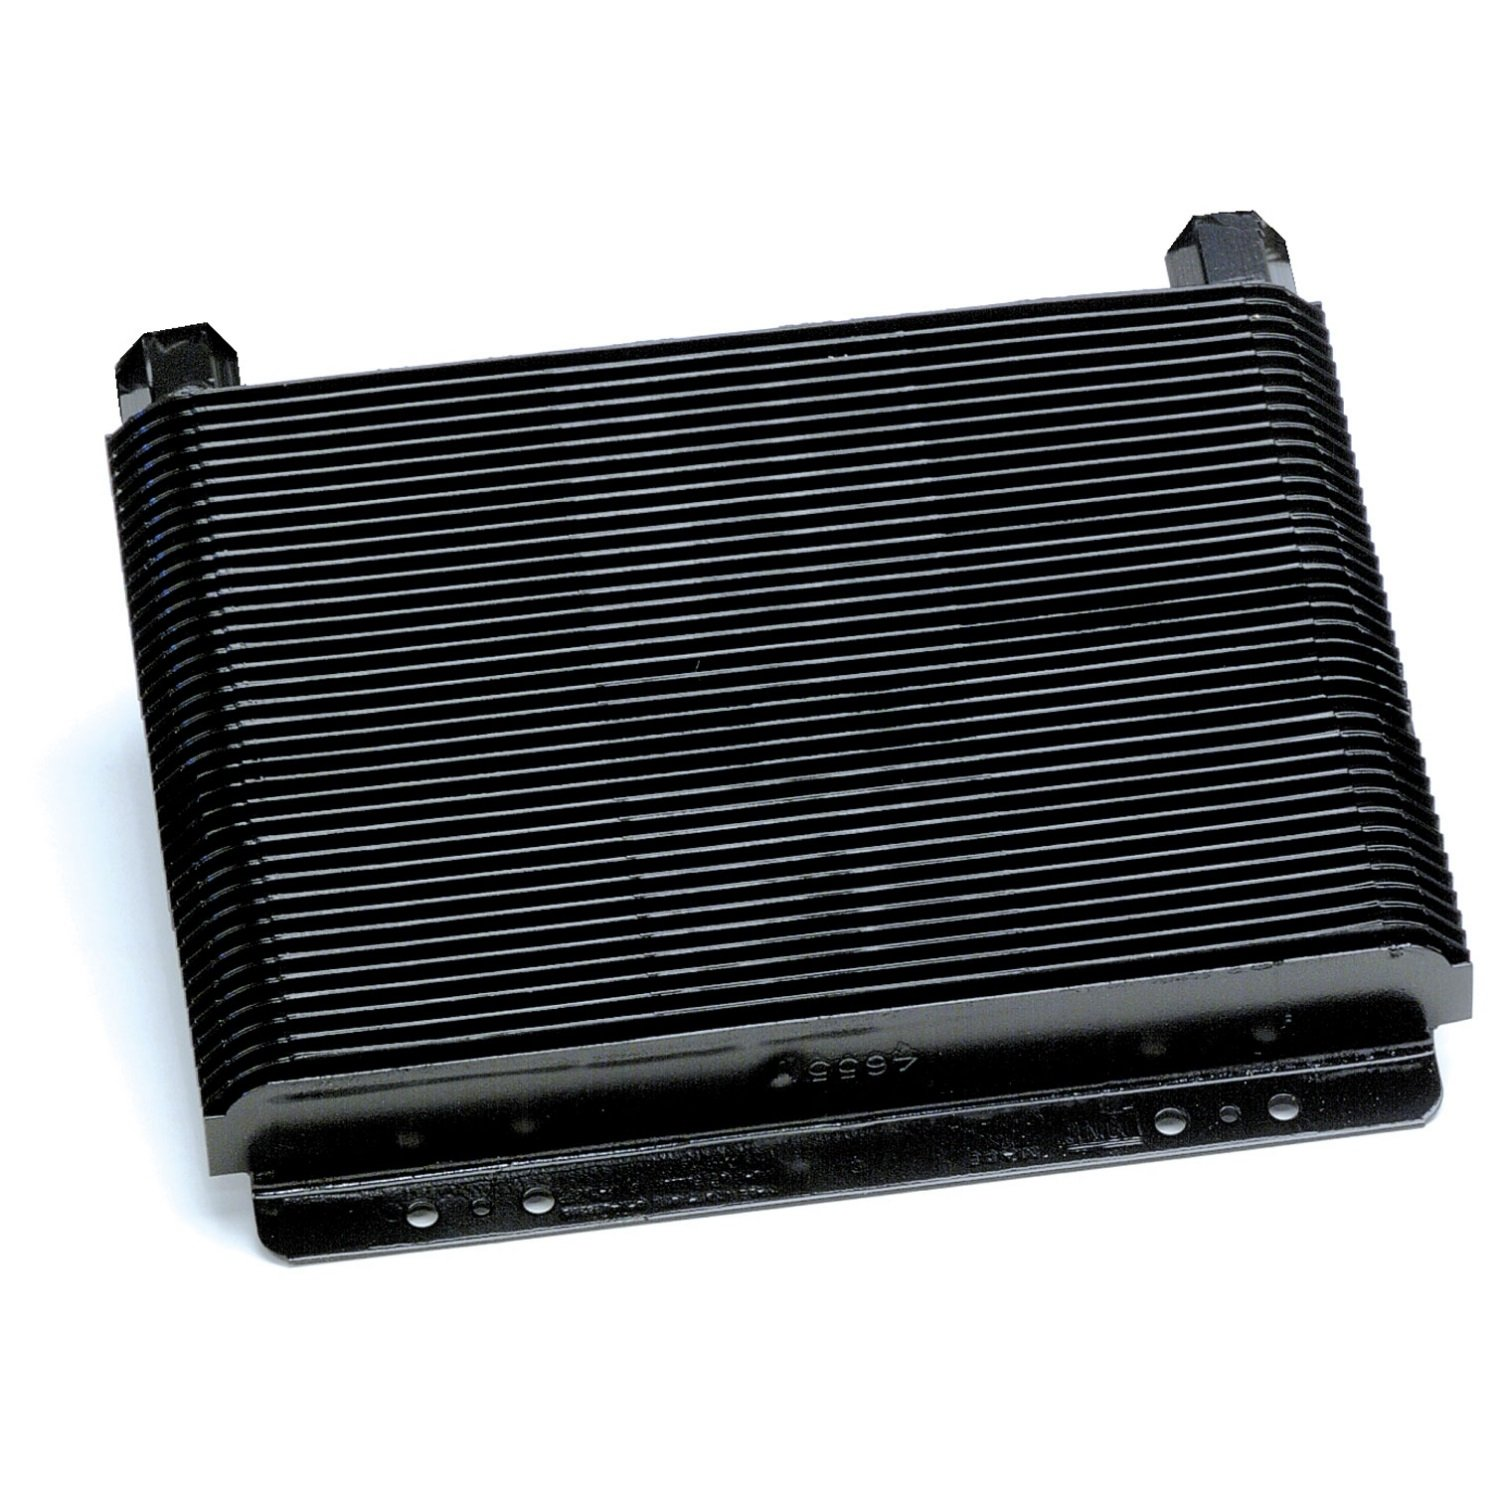 B&M 70266 SuperCooler Automatic Transmission Cooler by B&M (Image #1)